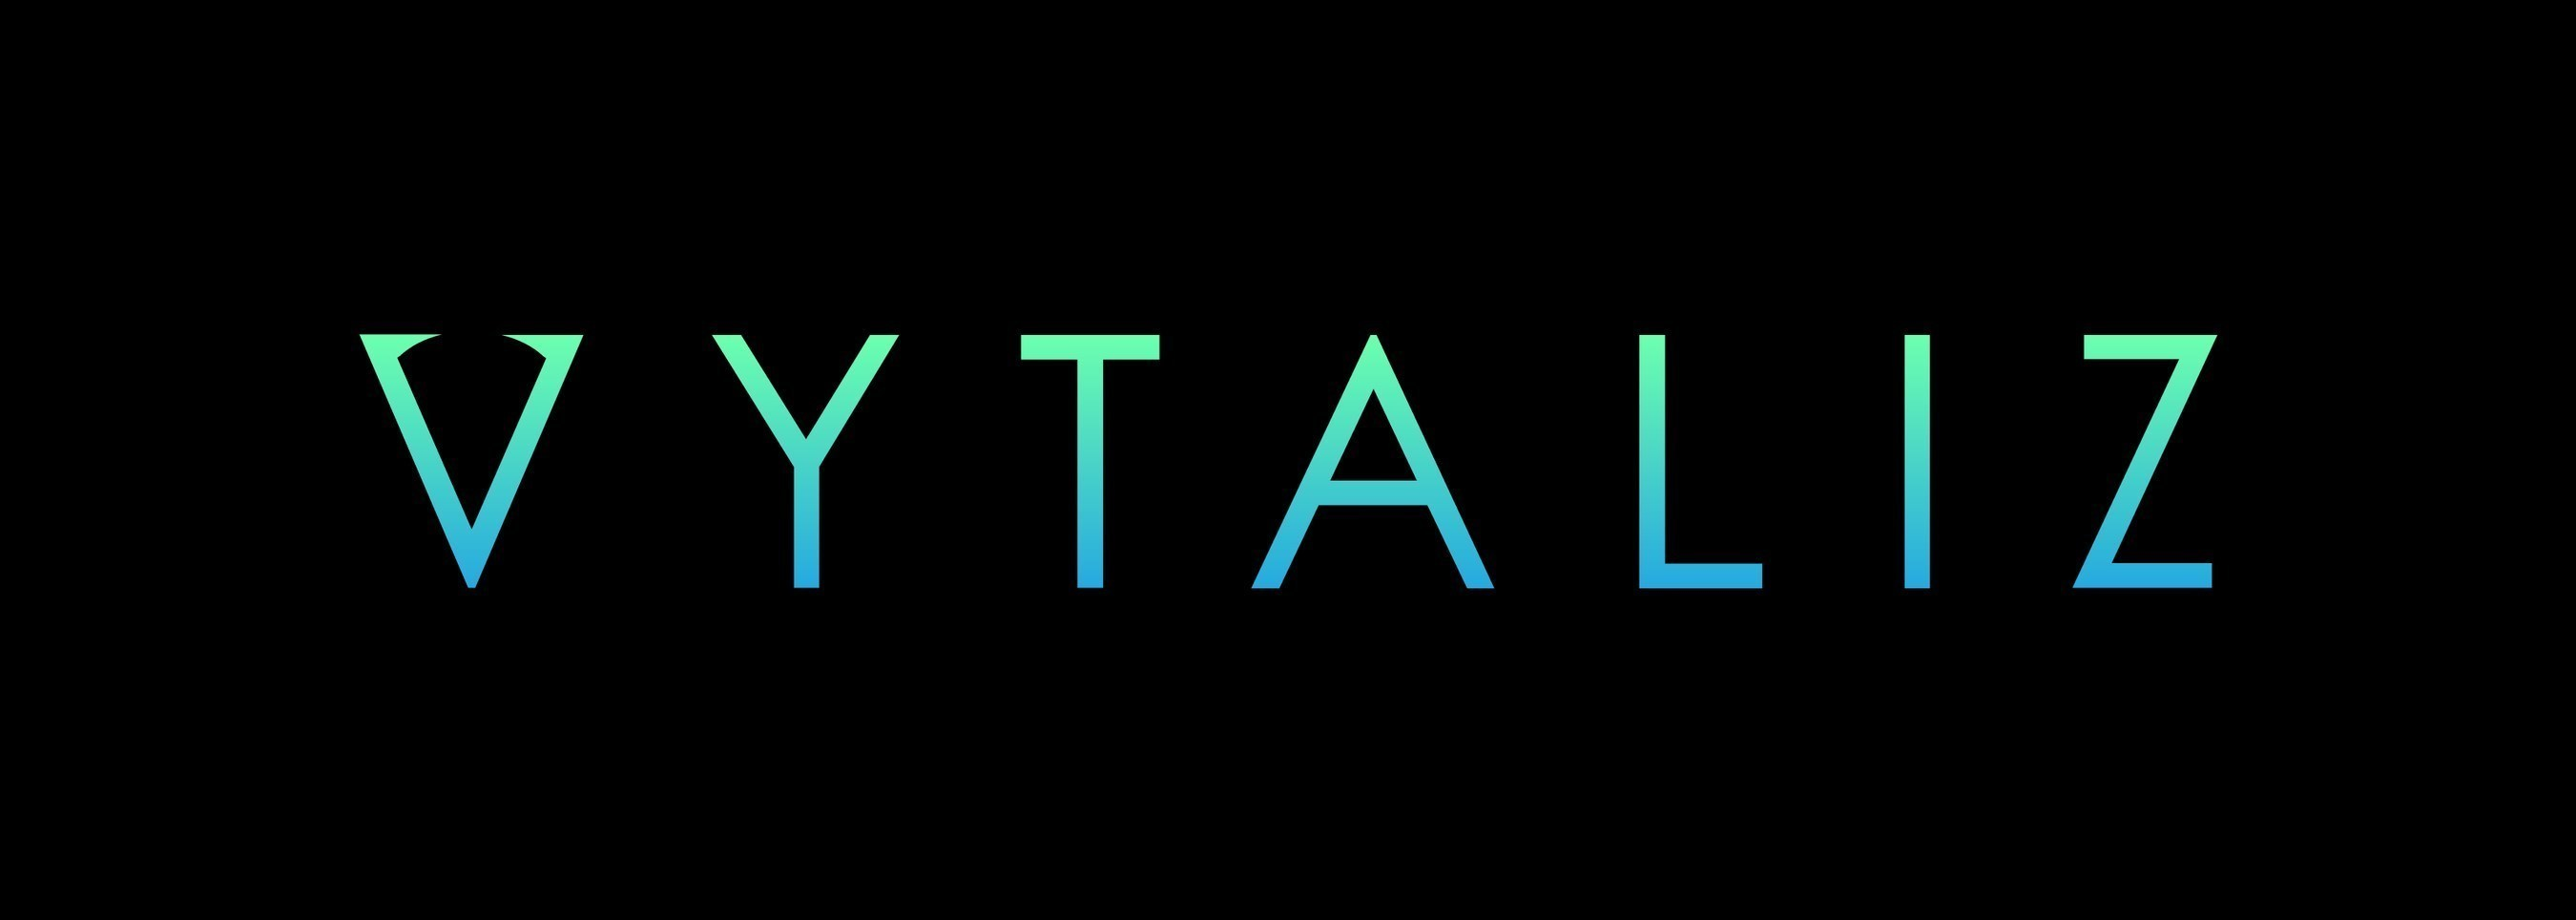 Vytaliz announces free in-home lab work for July